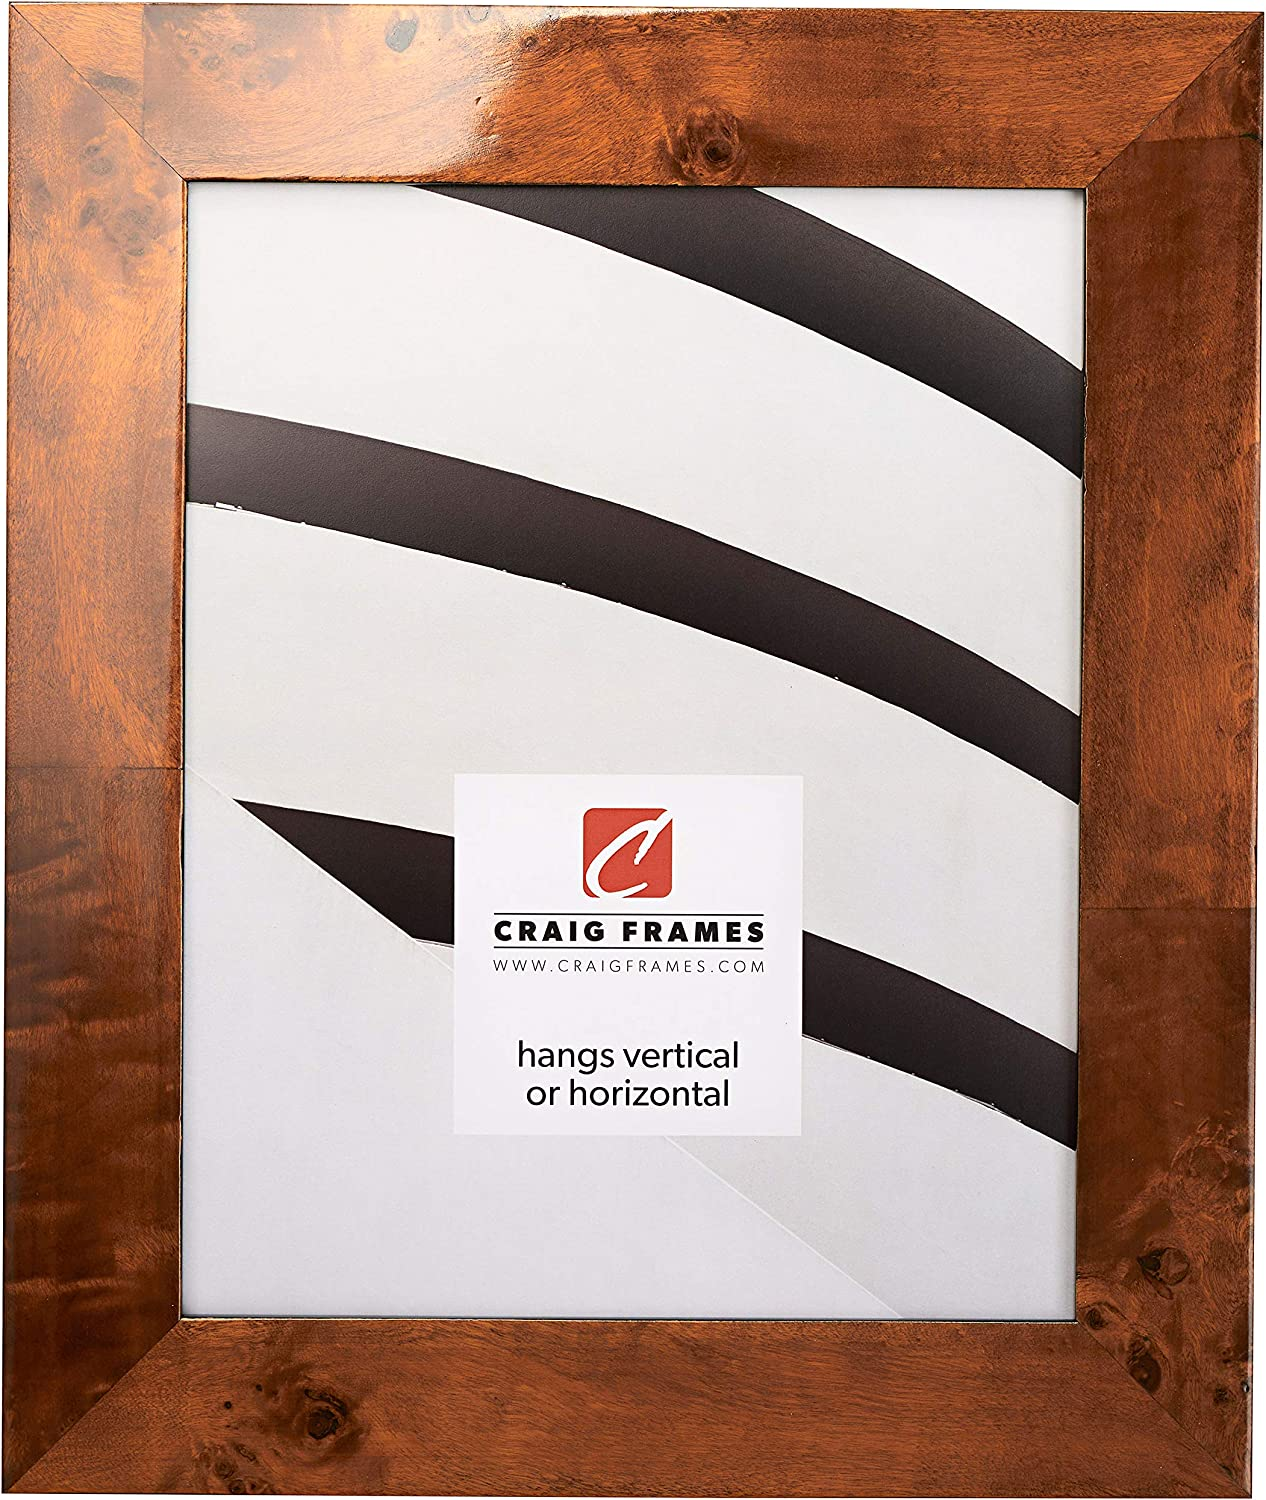 Craig Frames El Paso mart Mall Innovations Picture Frame 22 Brow 28 x Honey Inch